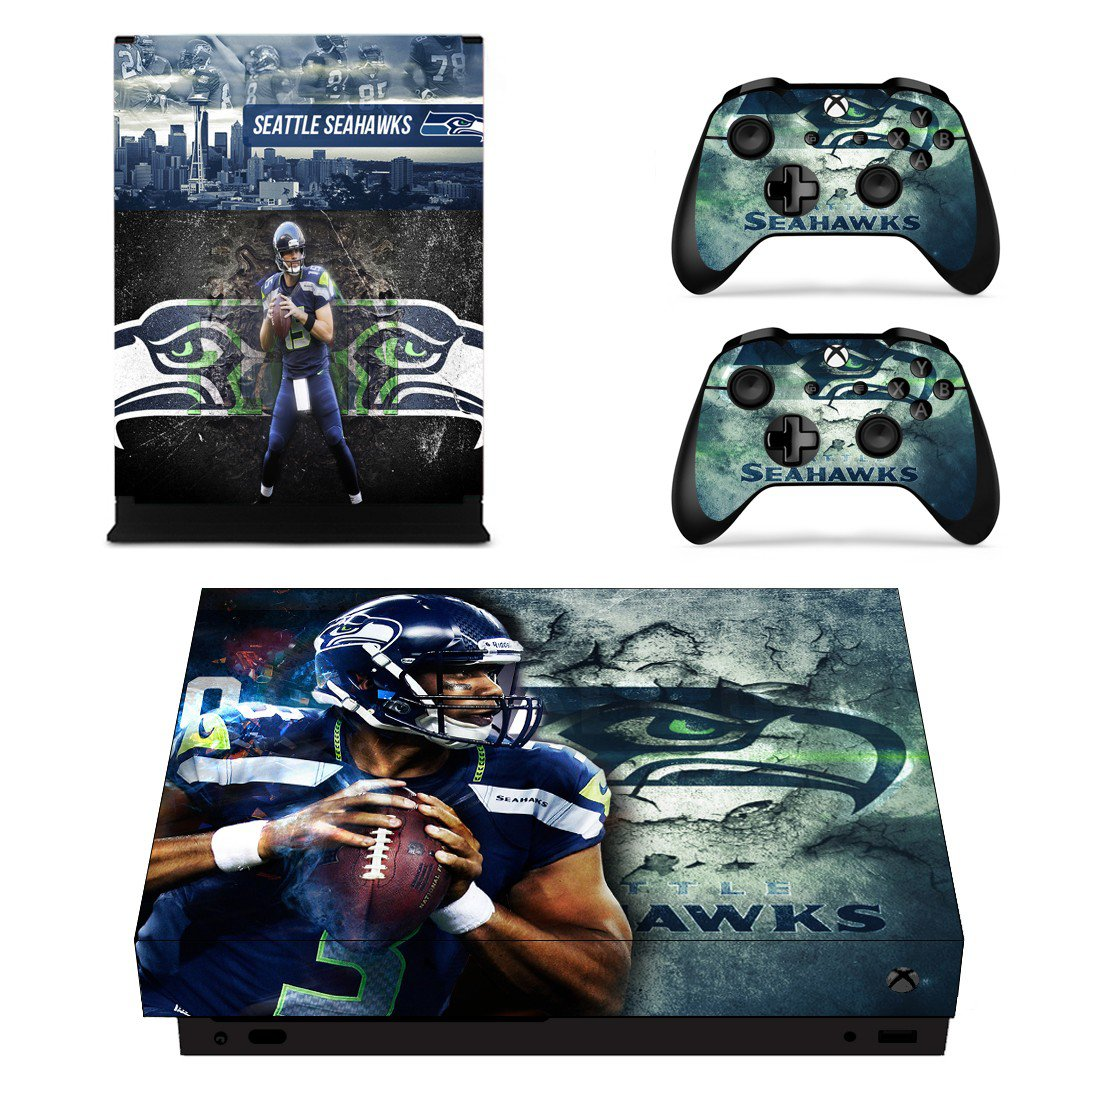 Seattle Seahawks decal skin sticker for Xbox One X console and controllers